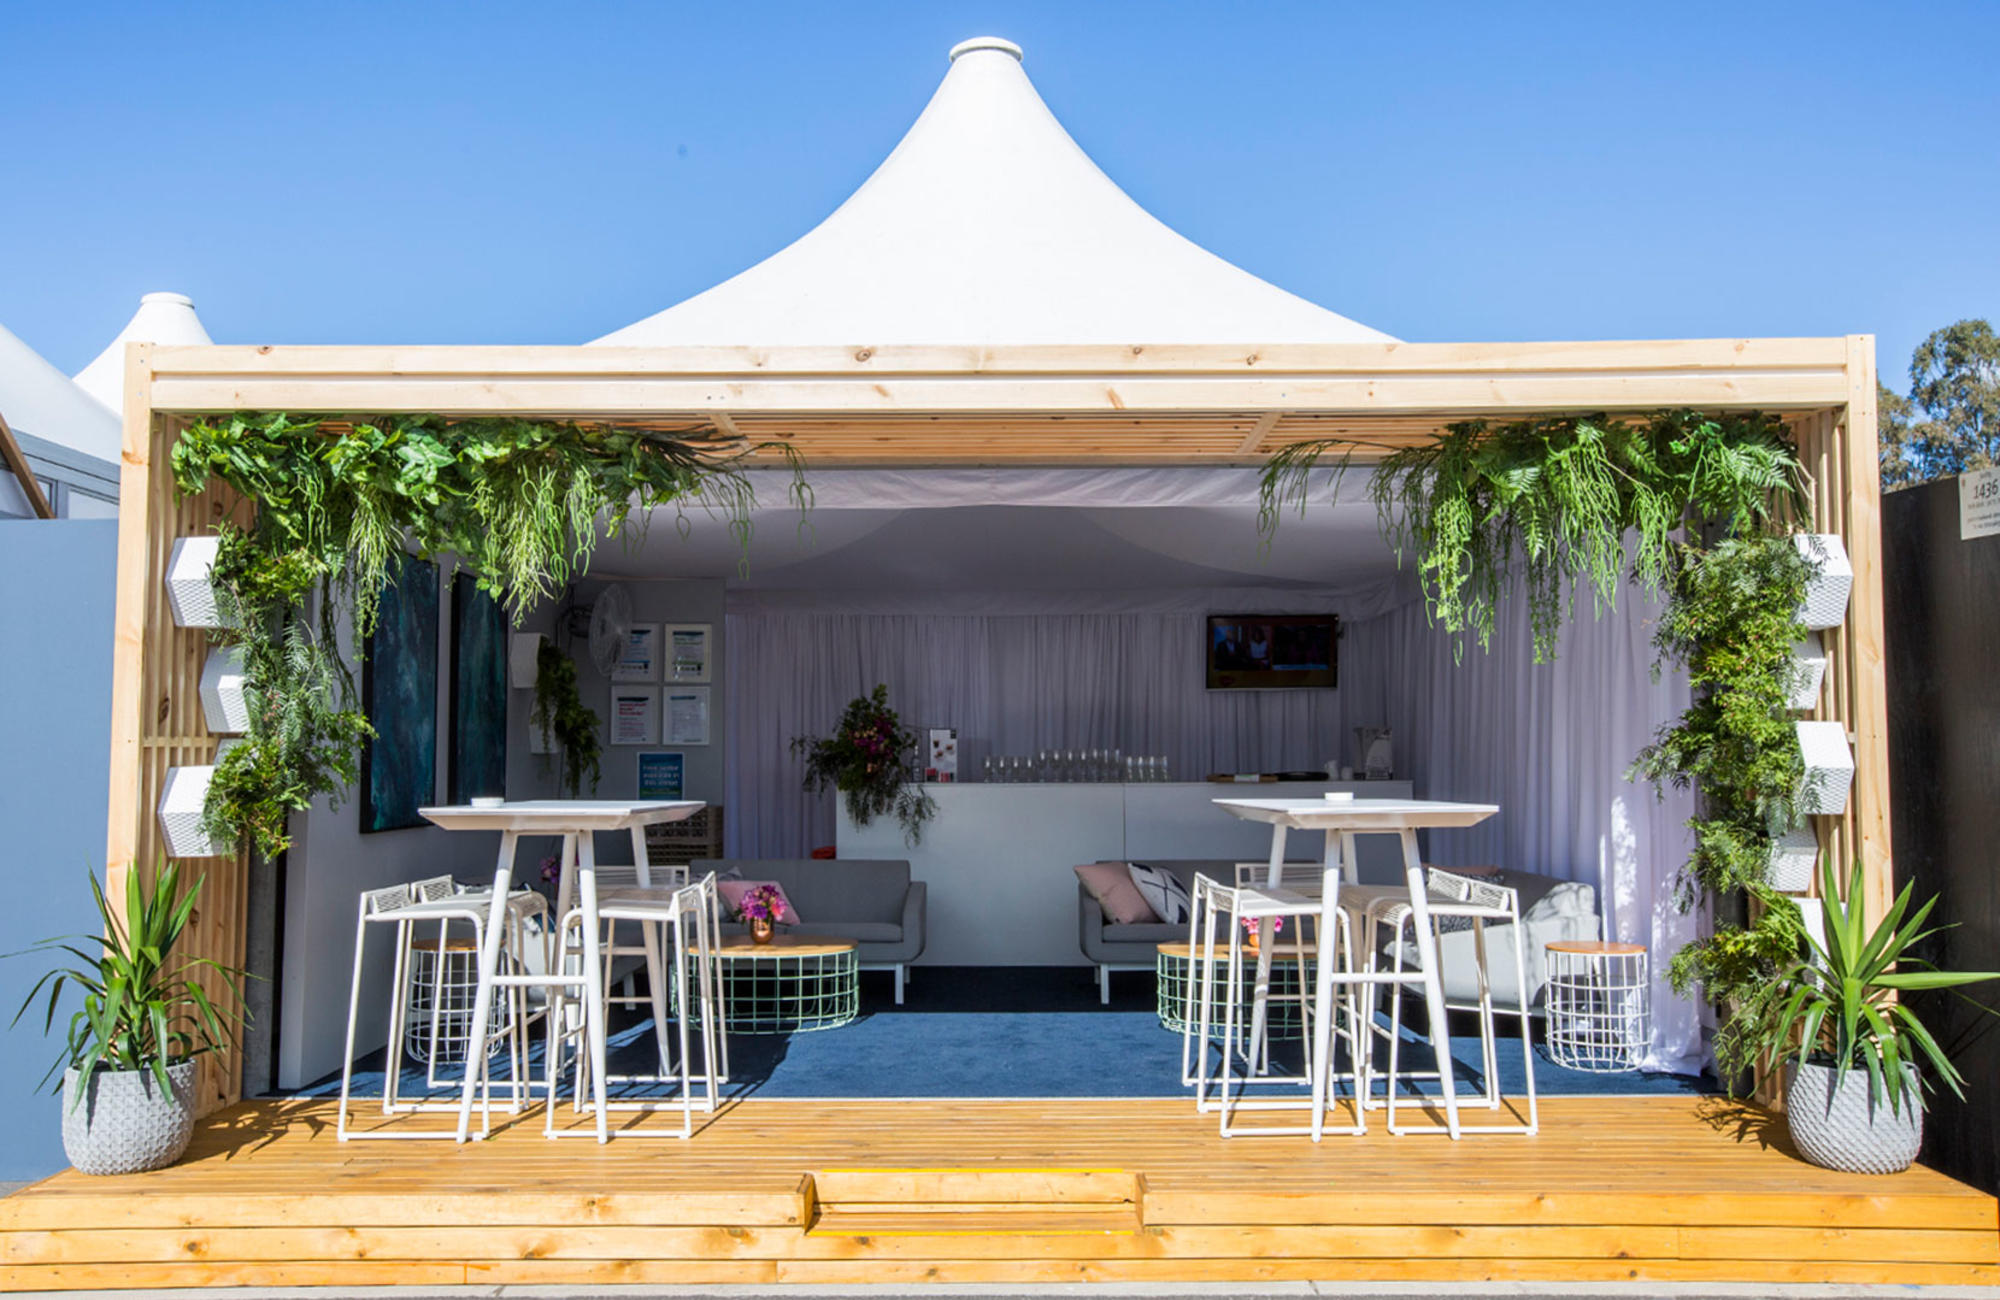 Marquee Hire & Rental Experts | Harry the hirer